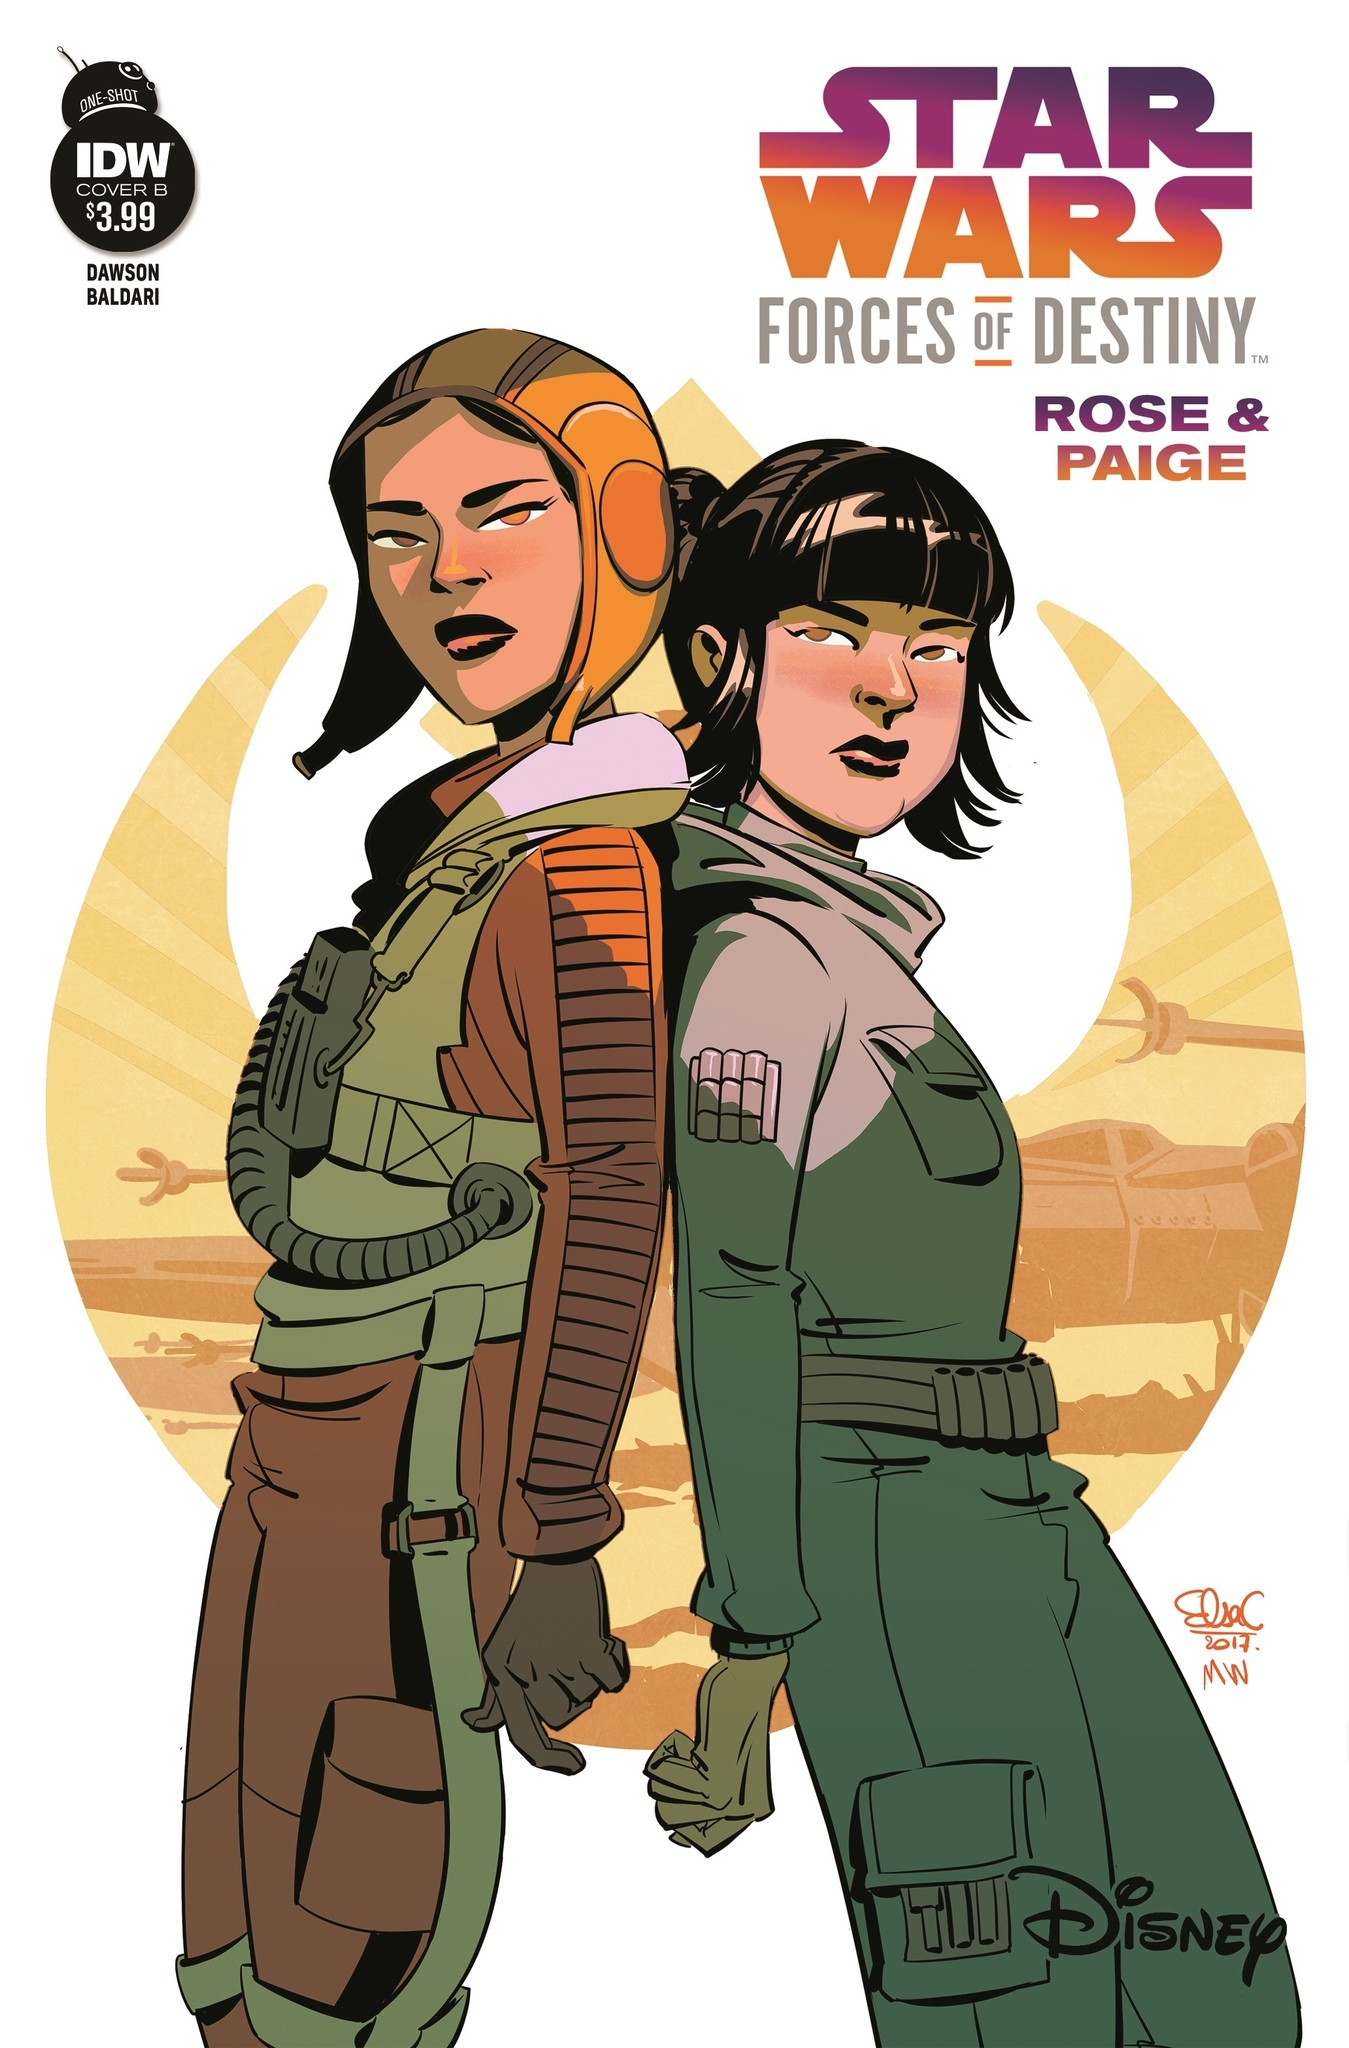 Rose and Paige Tico star in IDW's